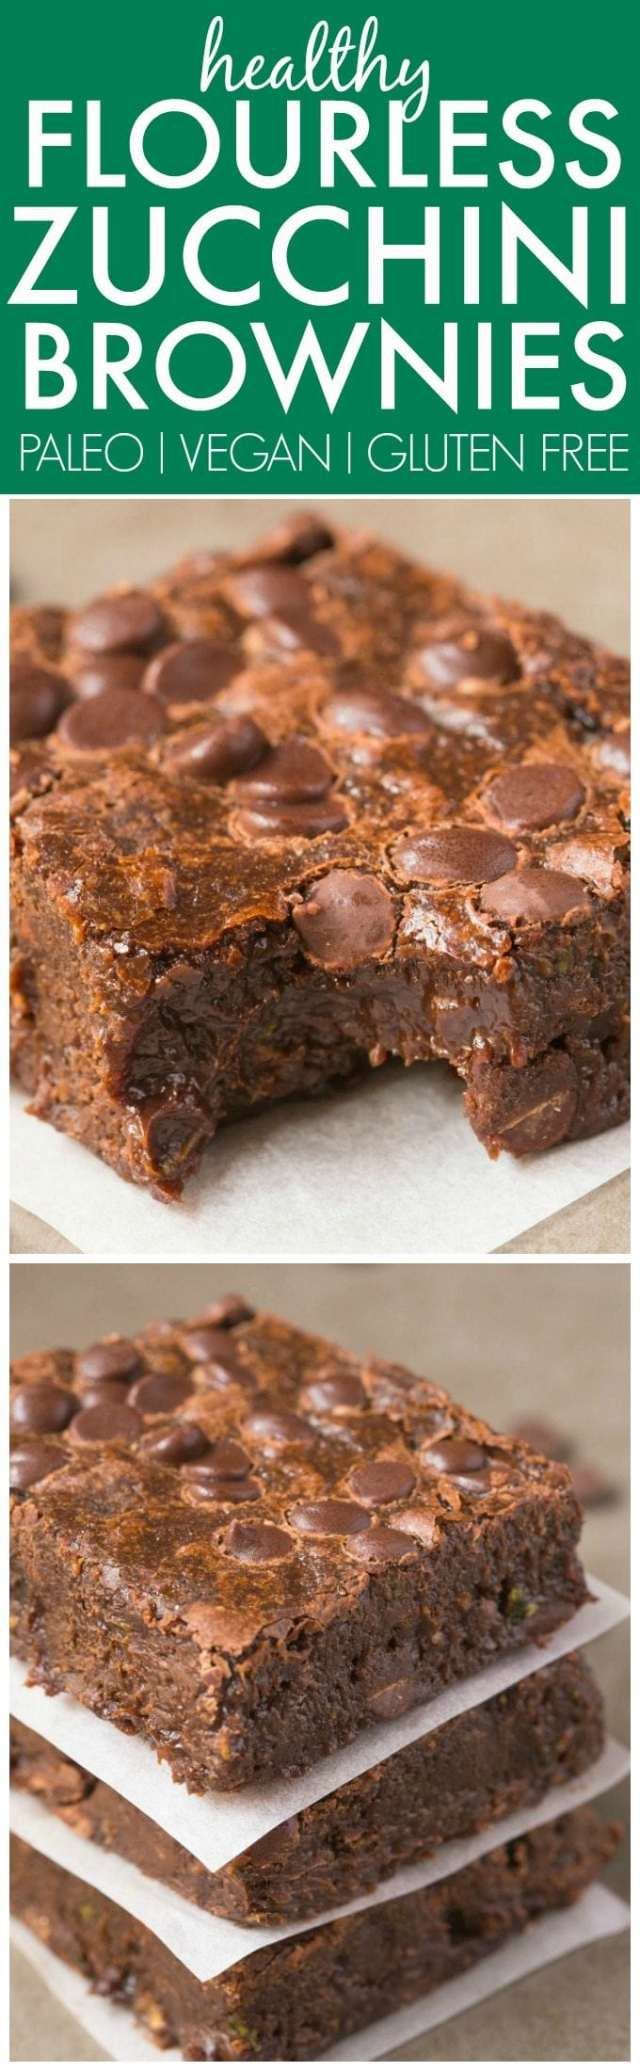 Healthy FLOURLESS Zucchini Fudge Brownies made with NO butter and NO flour and ridiculously easy- Hands down, BEST brownies ever! {vegan, gluten free, paleo recipe}- thebigmansworld.com